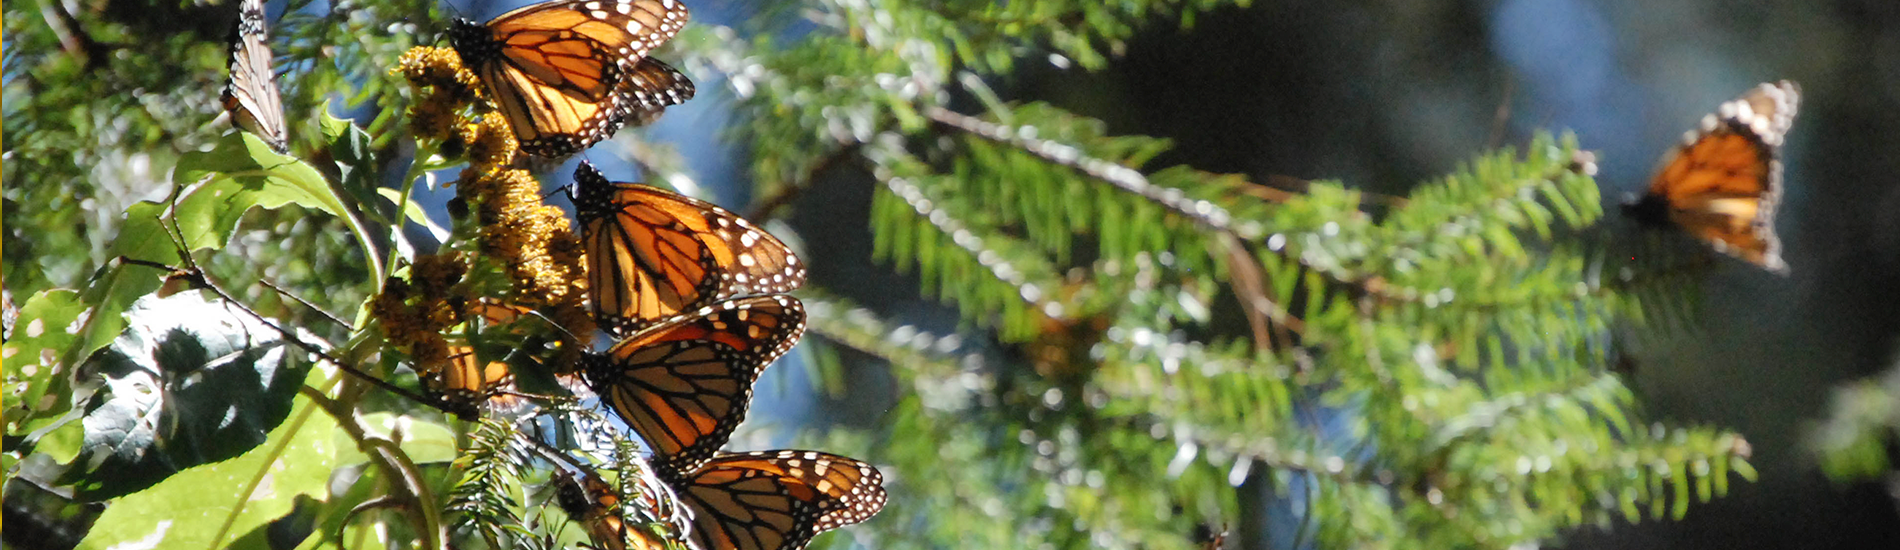 morelia and the monarch butterfly migration journey mexico